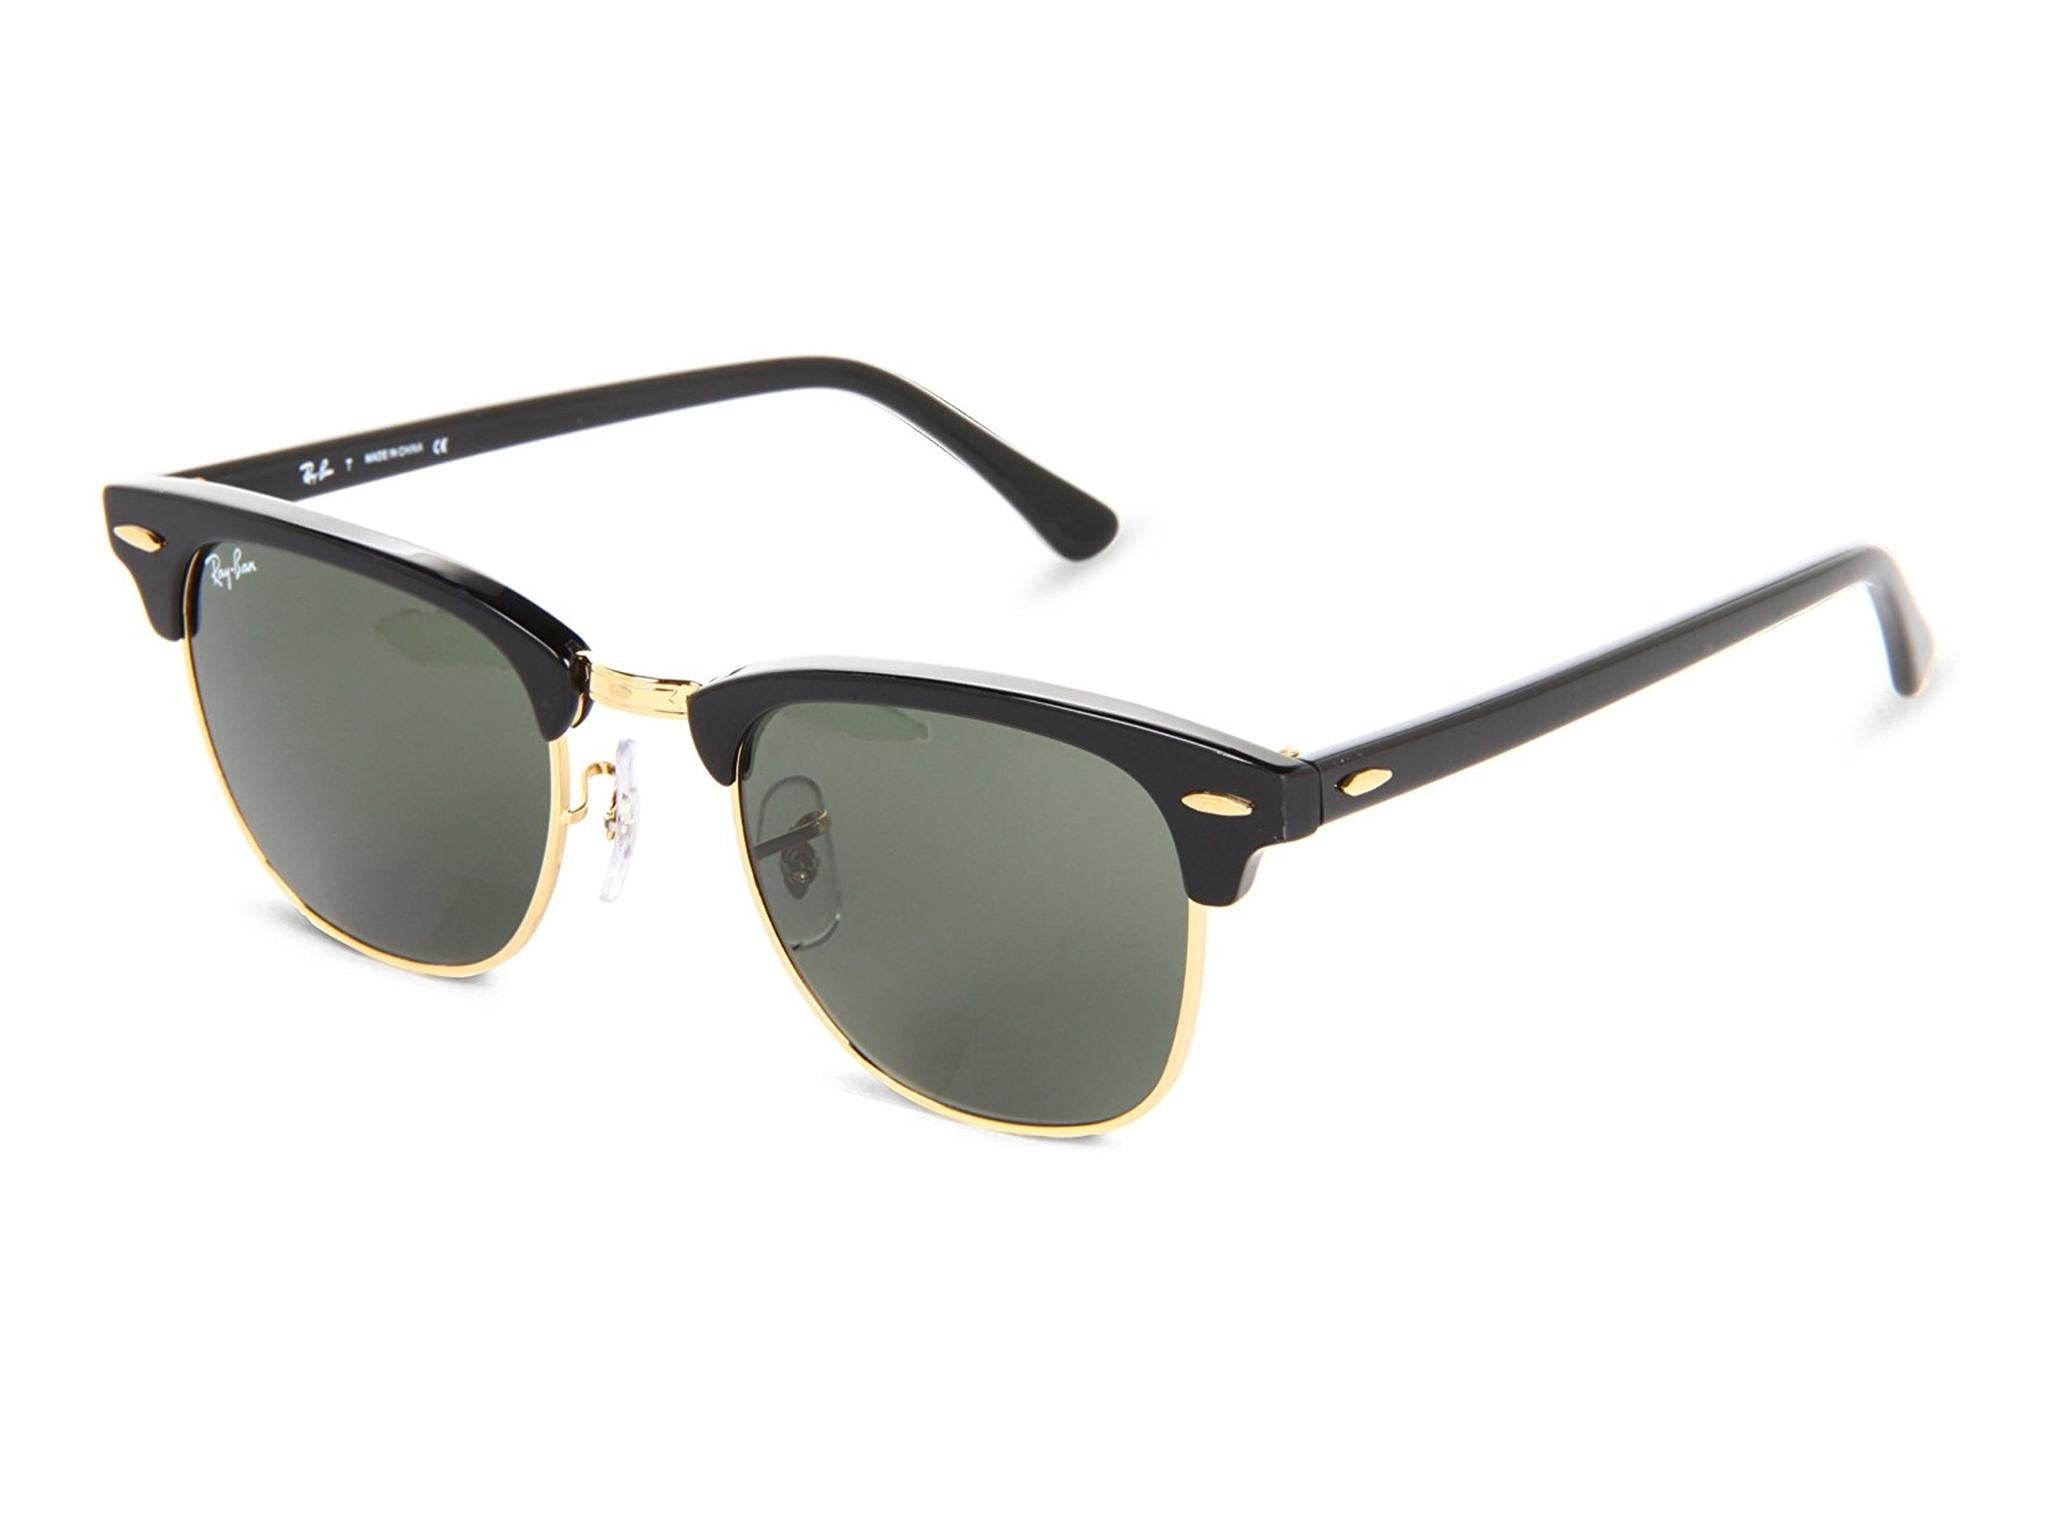 10 Best Mens Sunglasses The Independent Real Shades Screen Toddler 2 Orange Ray Ban Clubmaster 135